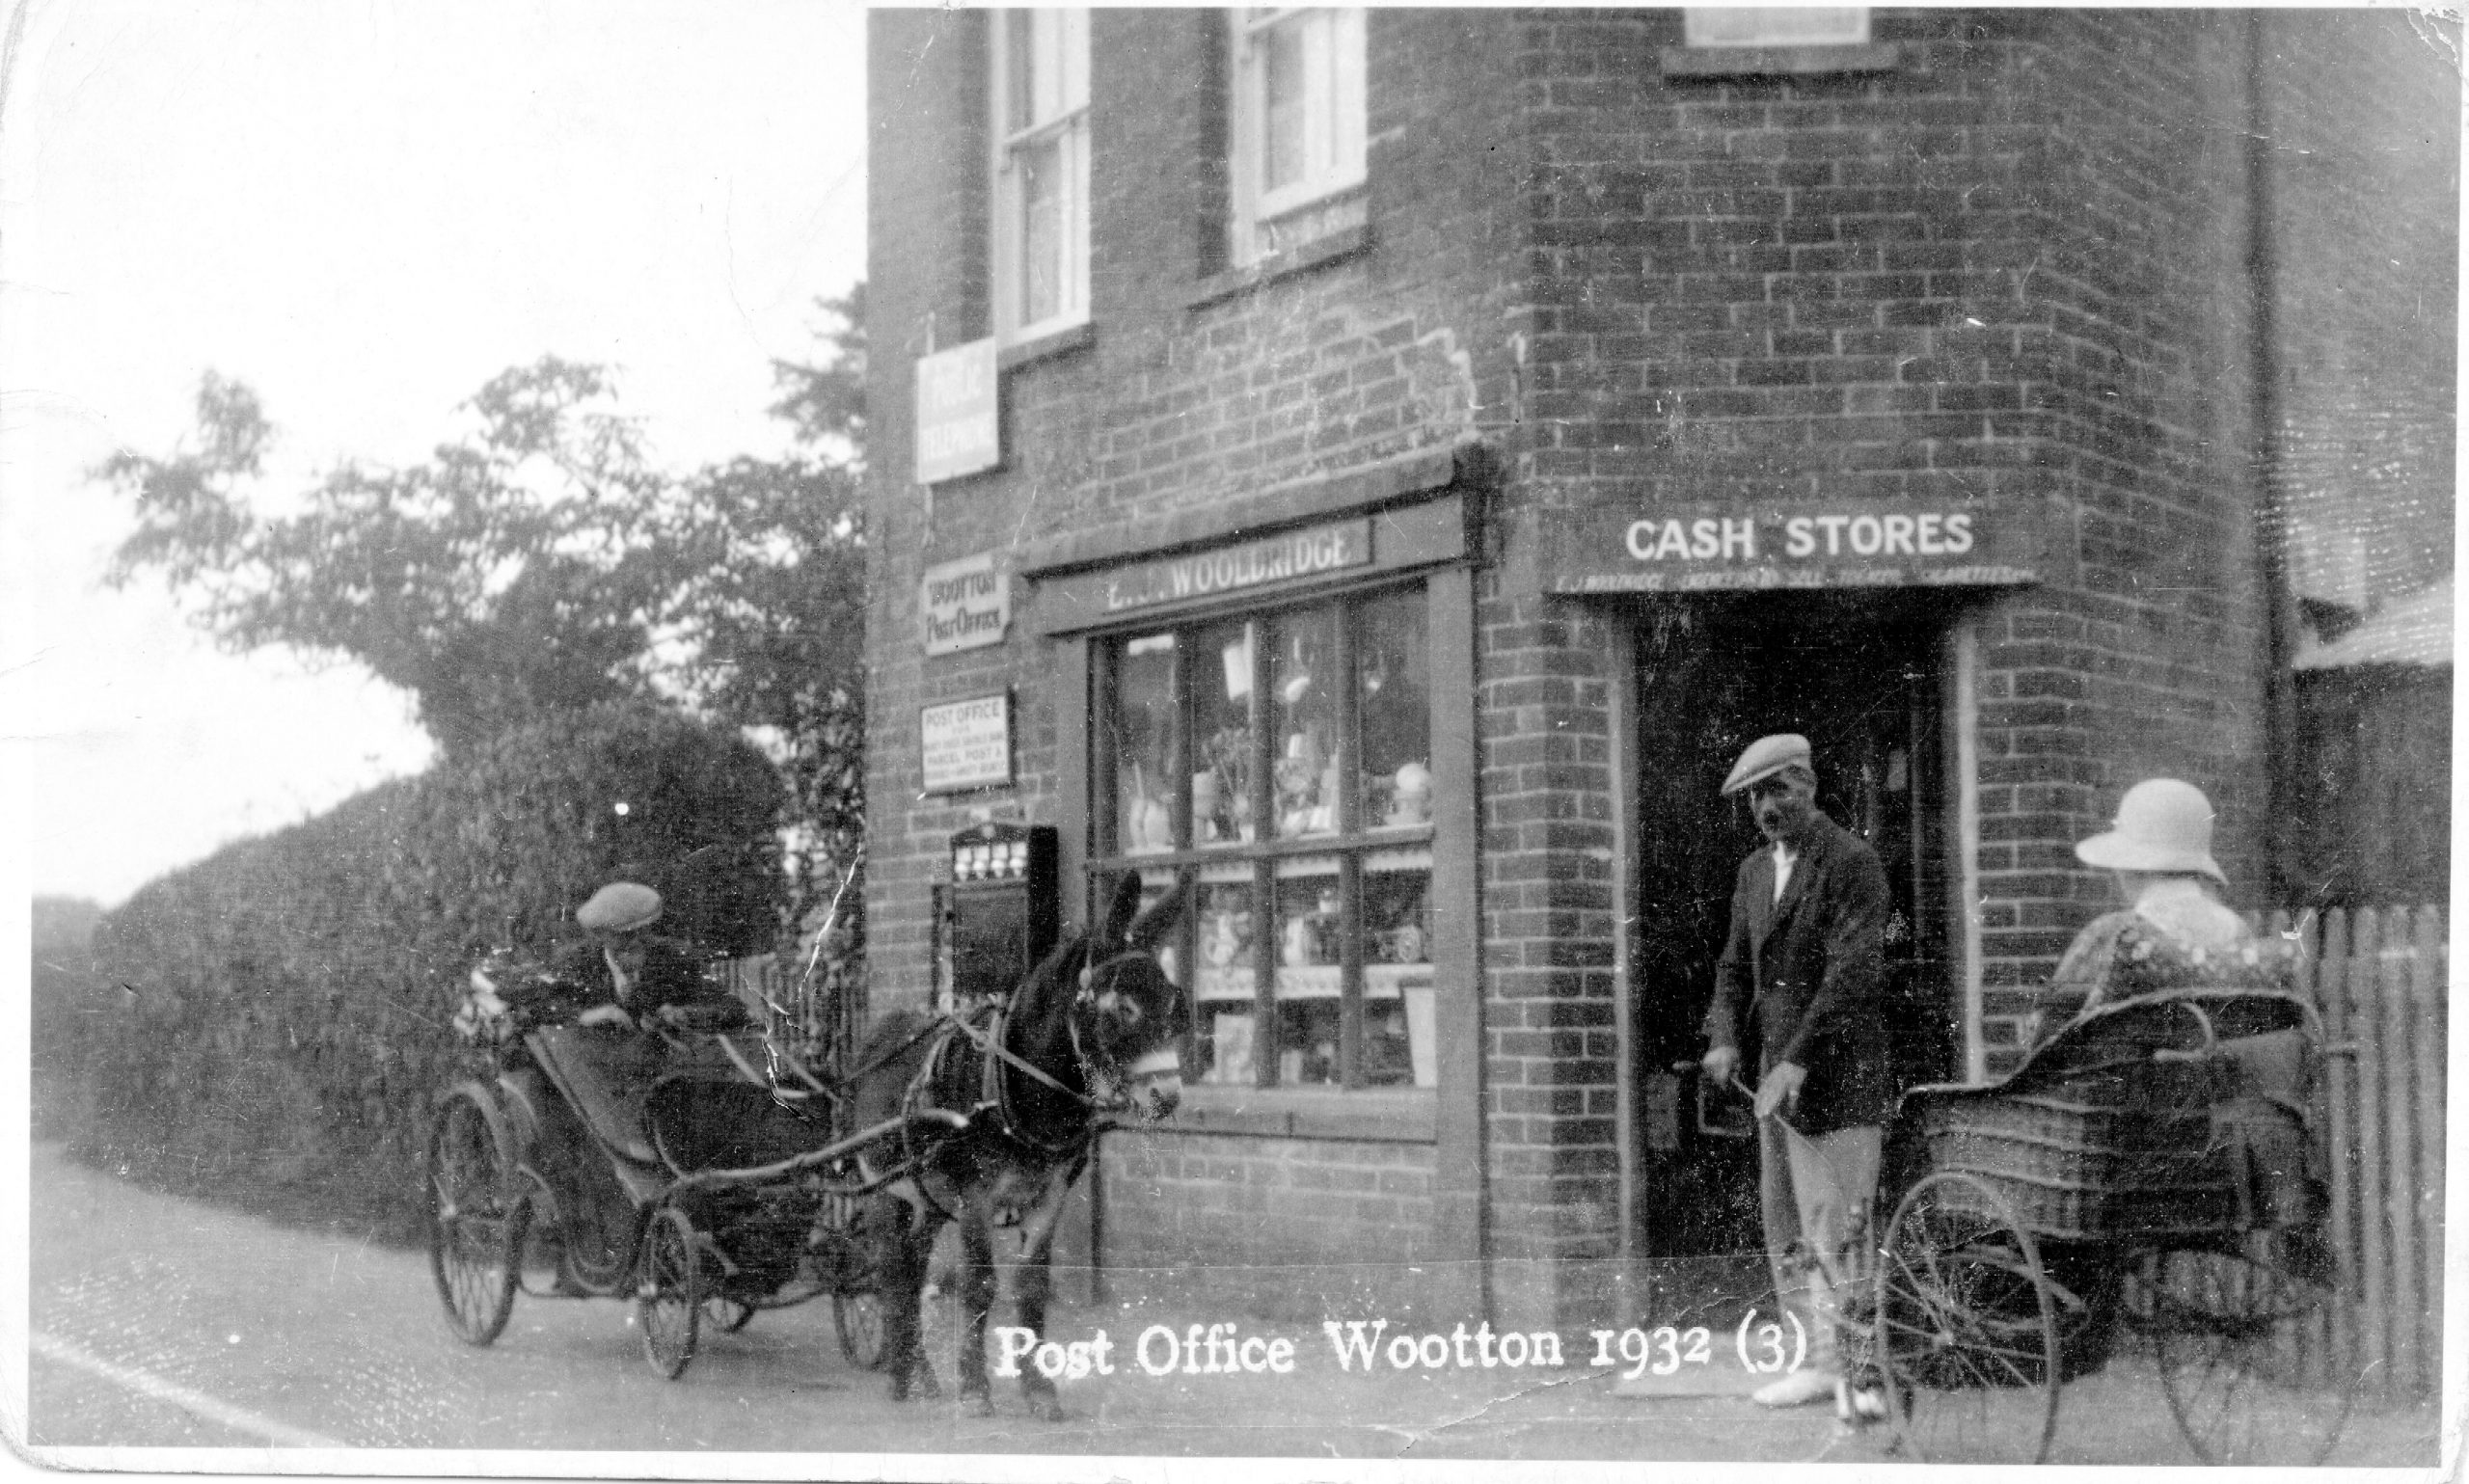 I:\New Milton Photographs and History\Wotton\Article for publication\Photo 1 Wootton Post office March 1937.jpg